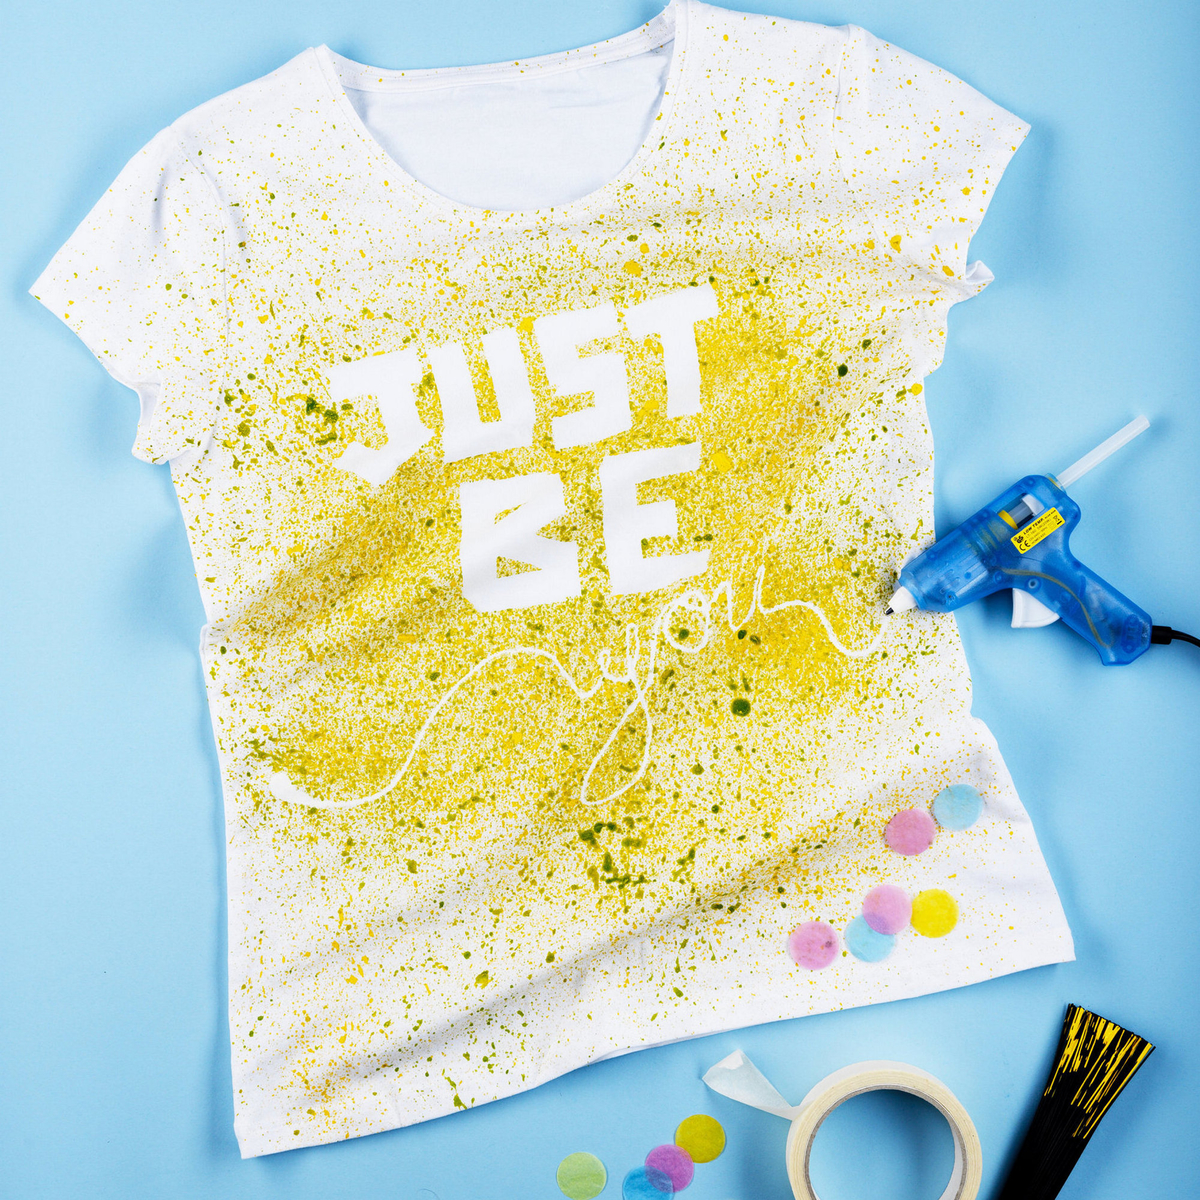 Decorate a T-shirt